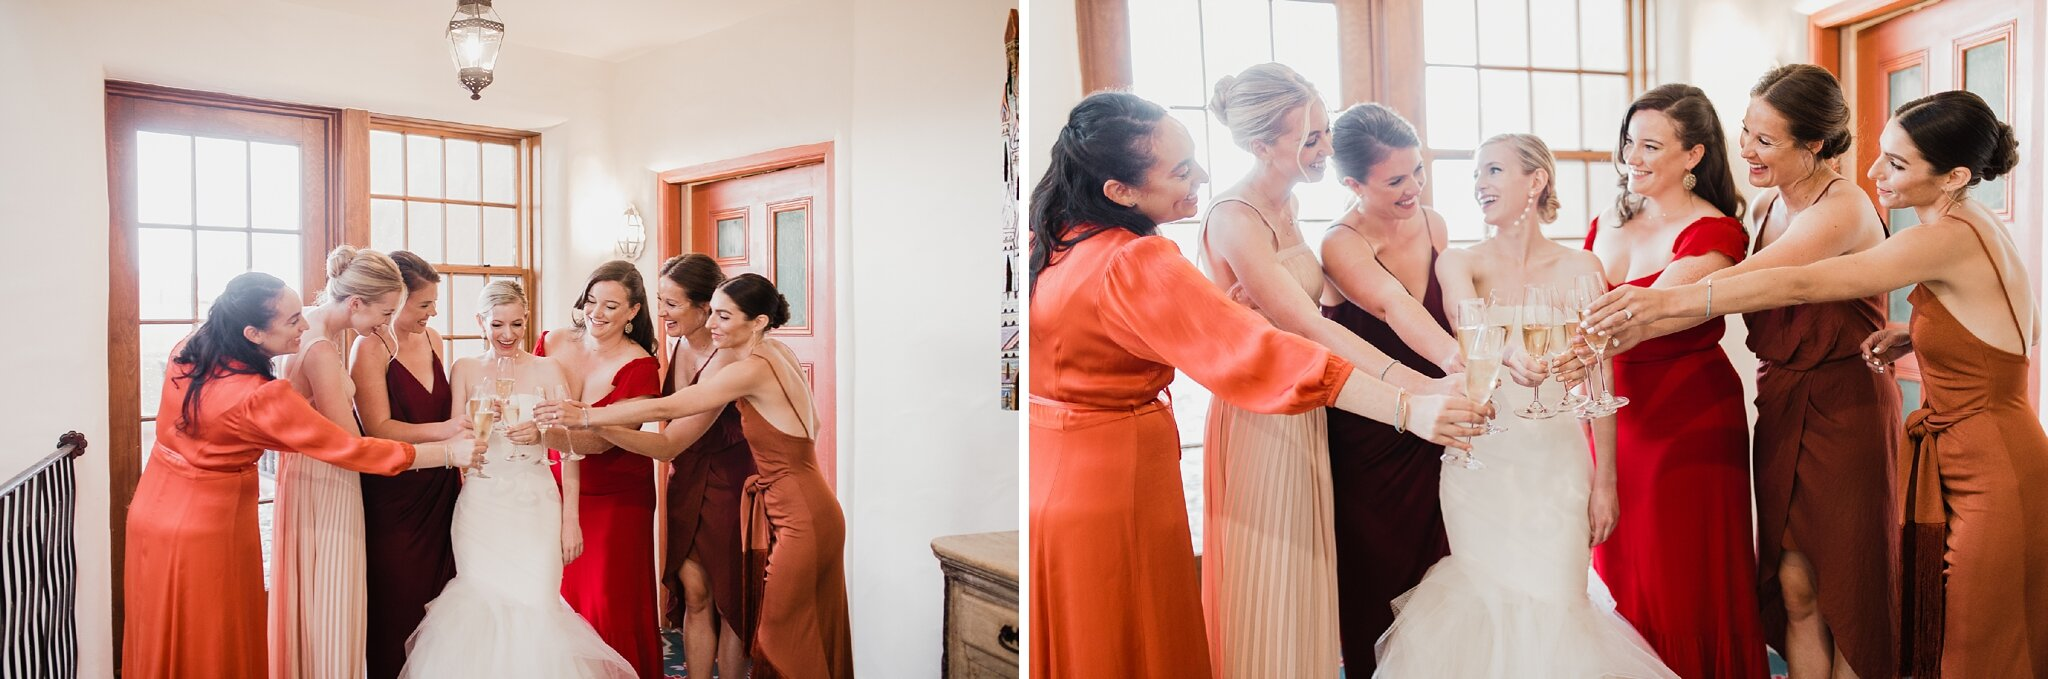 Alicia+lucia+photography+-+albuquerque+wedding+photographer+-+santa+fe+wedding+photography+-+new+mexico+wedding+photographer+-+new+mexico+wedding+-+la+fonda+wedding+-+la+fonda+on+the+plaza+-+santa+fe+wedding+-+brooklyn+bride_0020.jpg